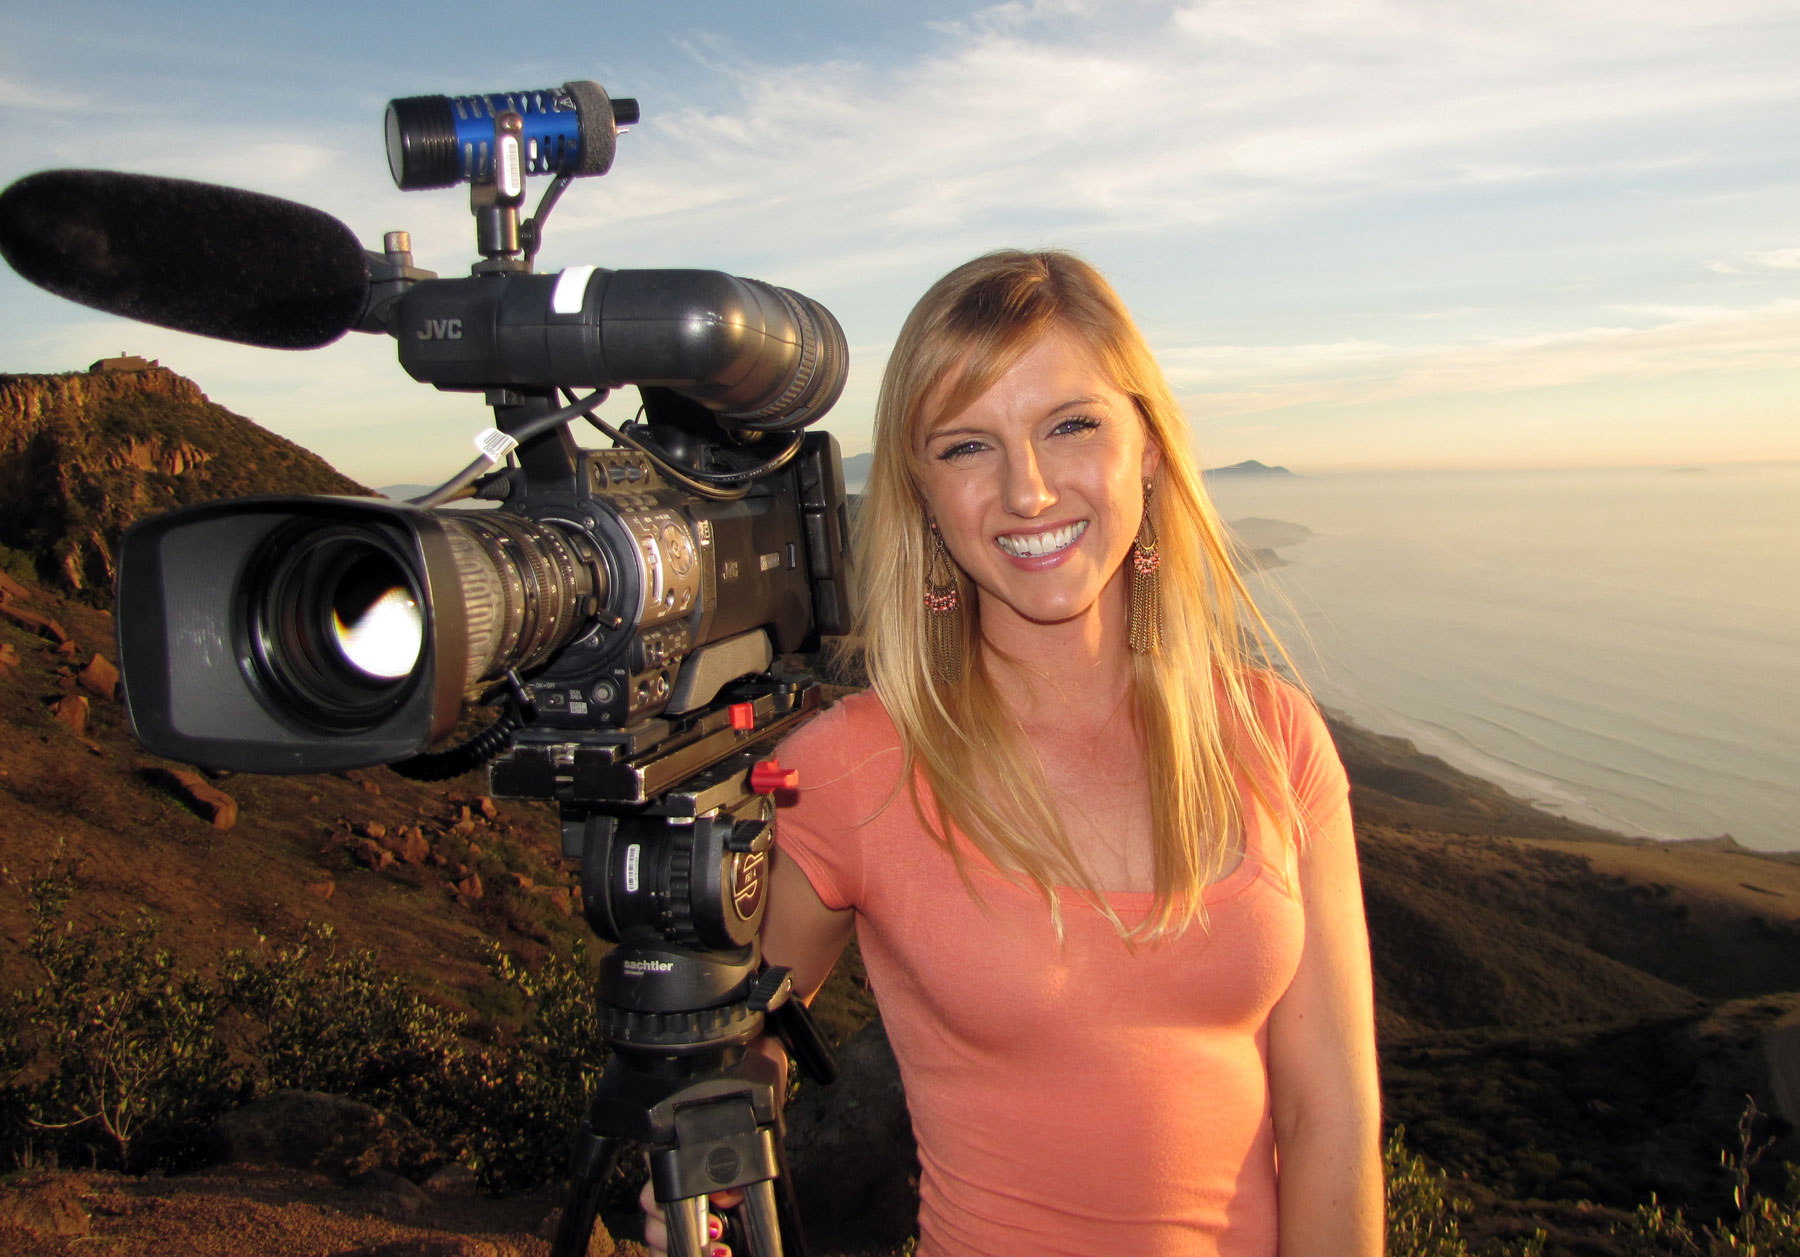 Katie Schoolov of KPBS-TV in San Diego has been appointed to the board of directors of the National Press Photographers Association.